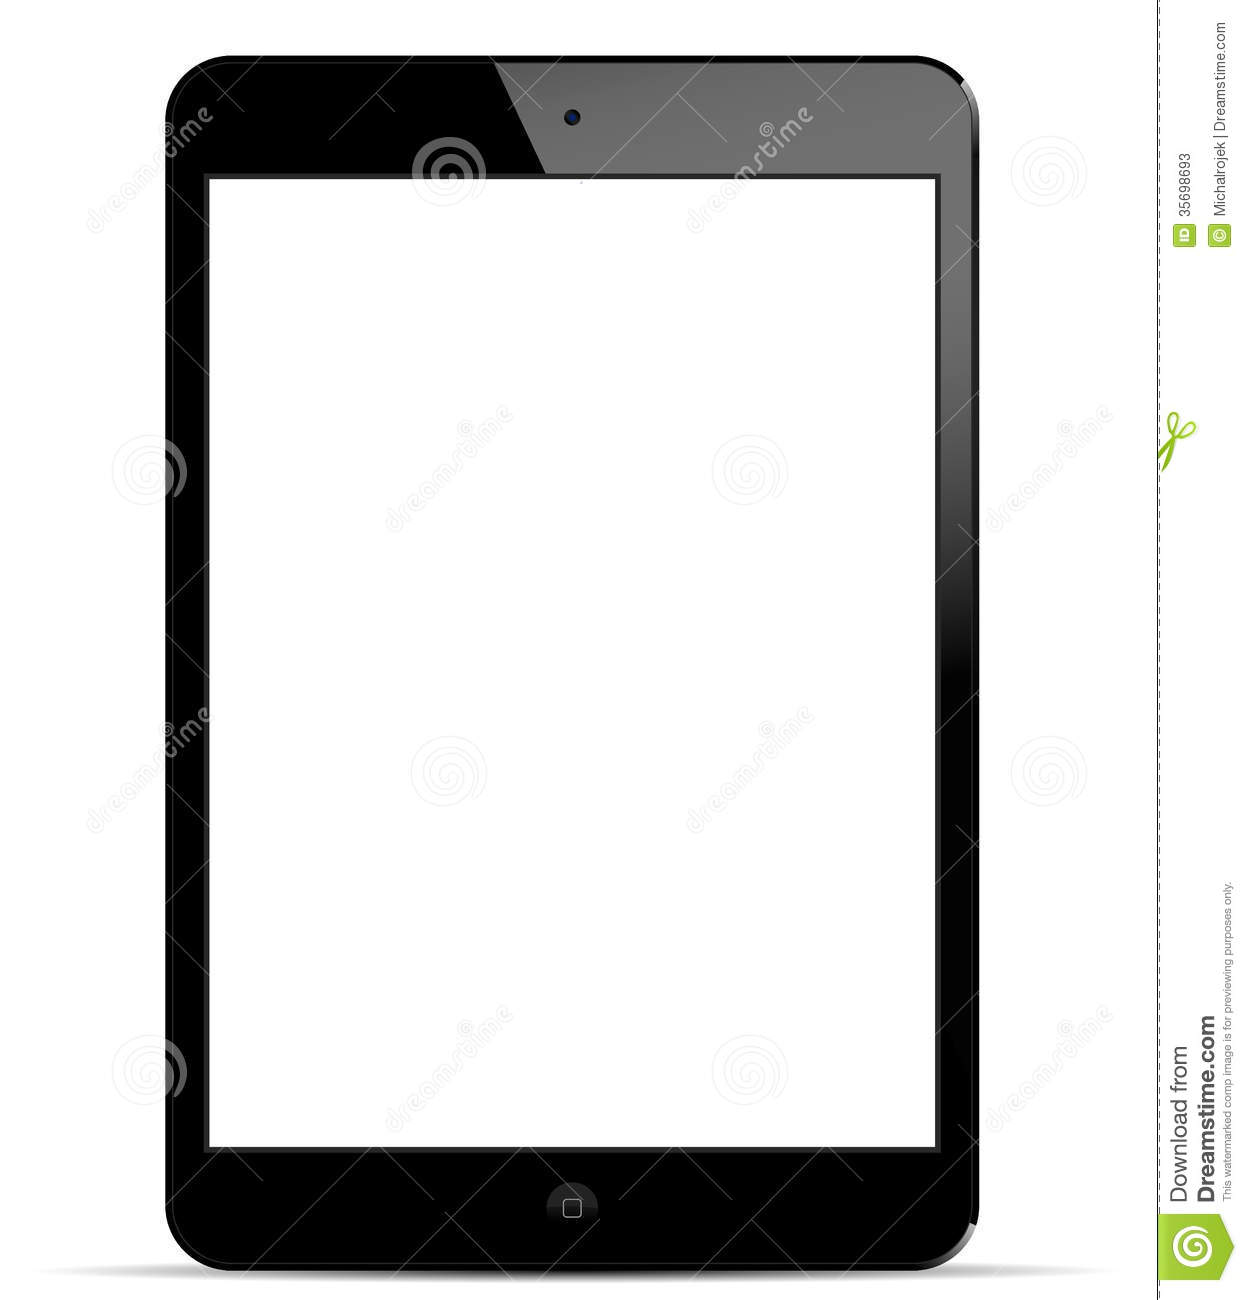 Retina display hd clipart.